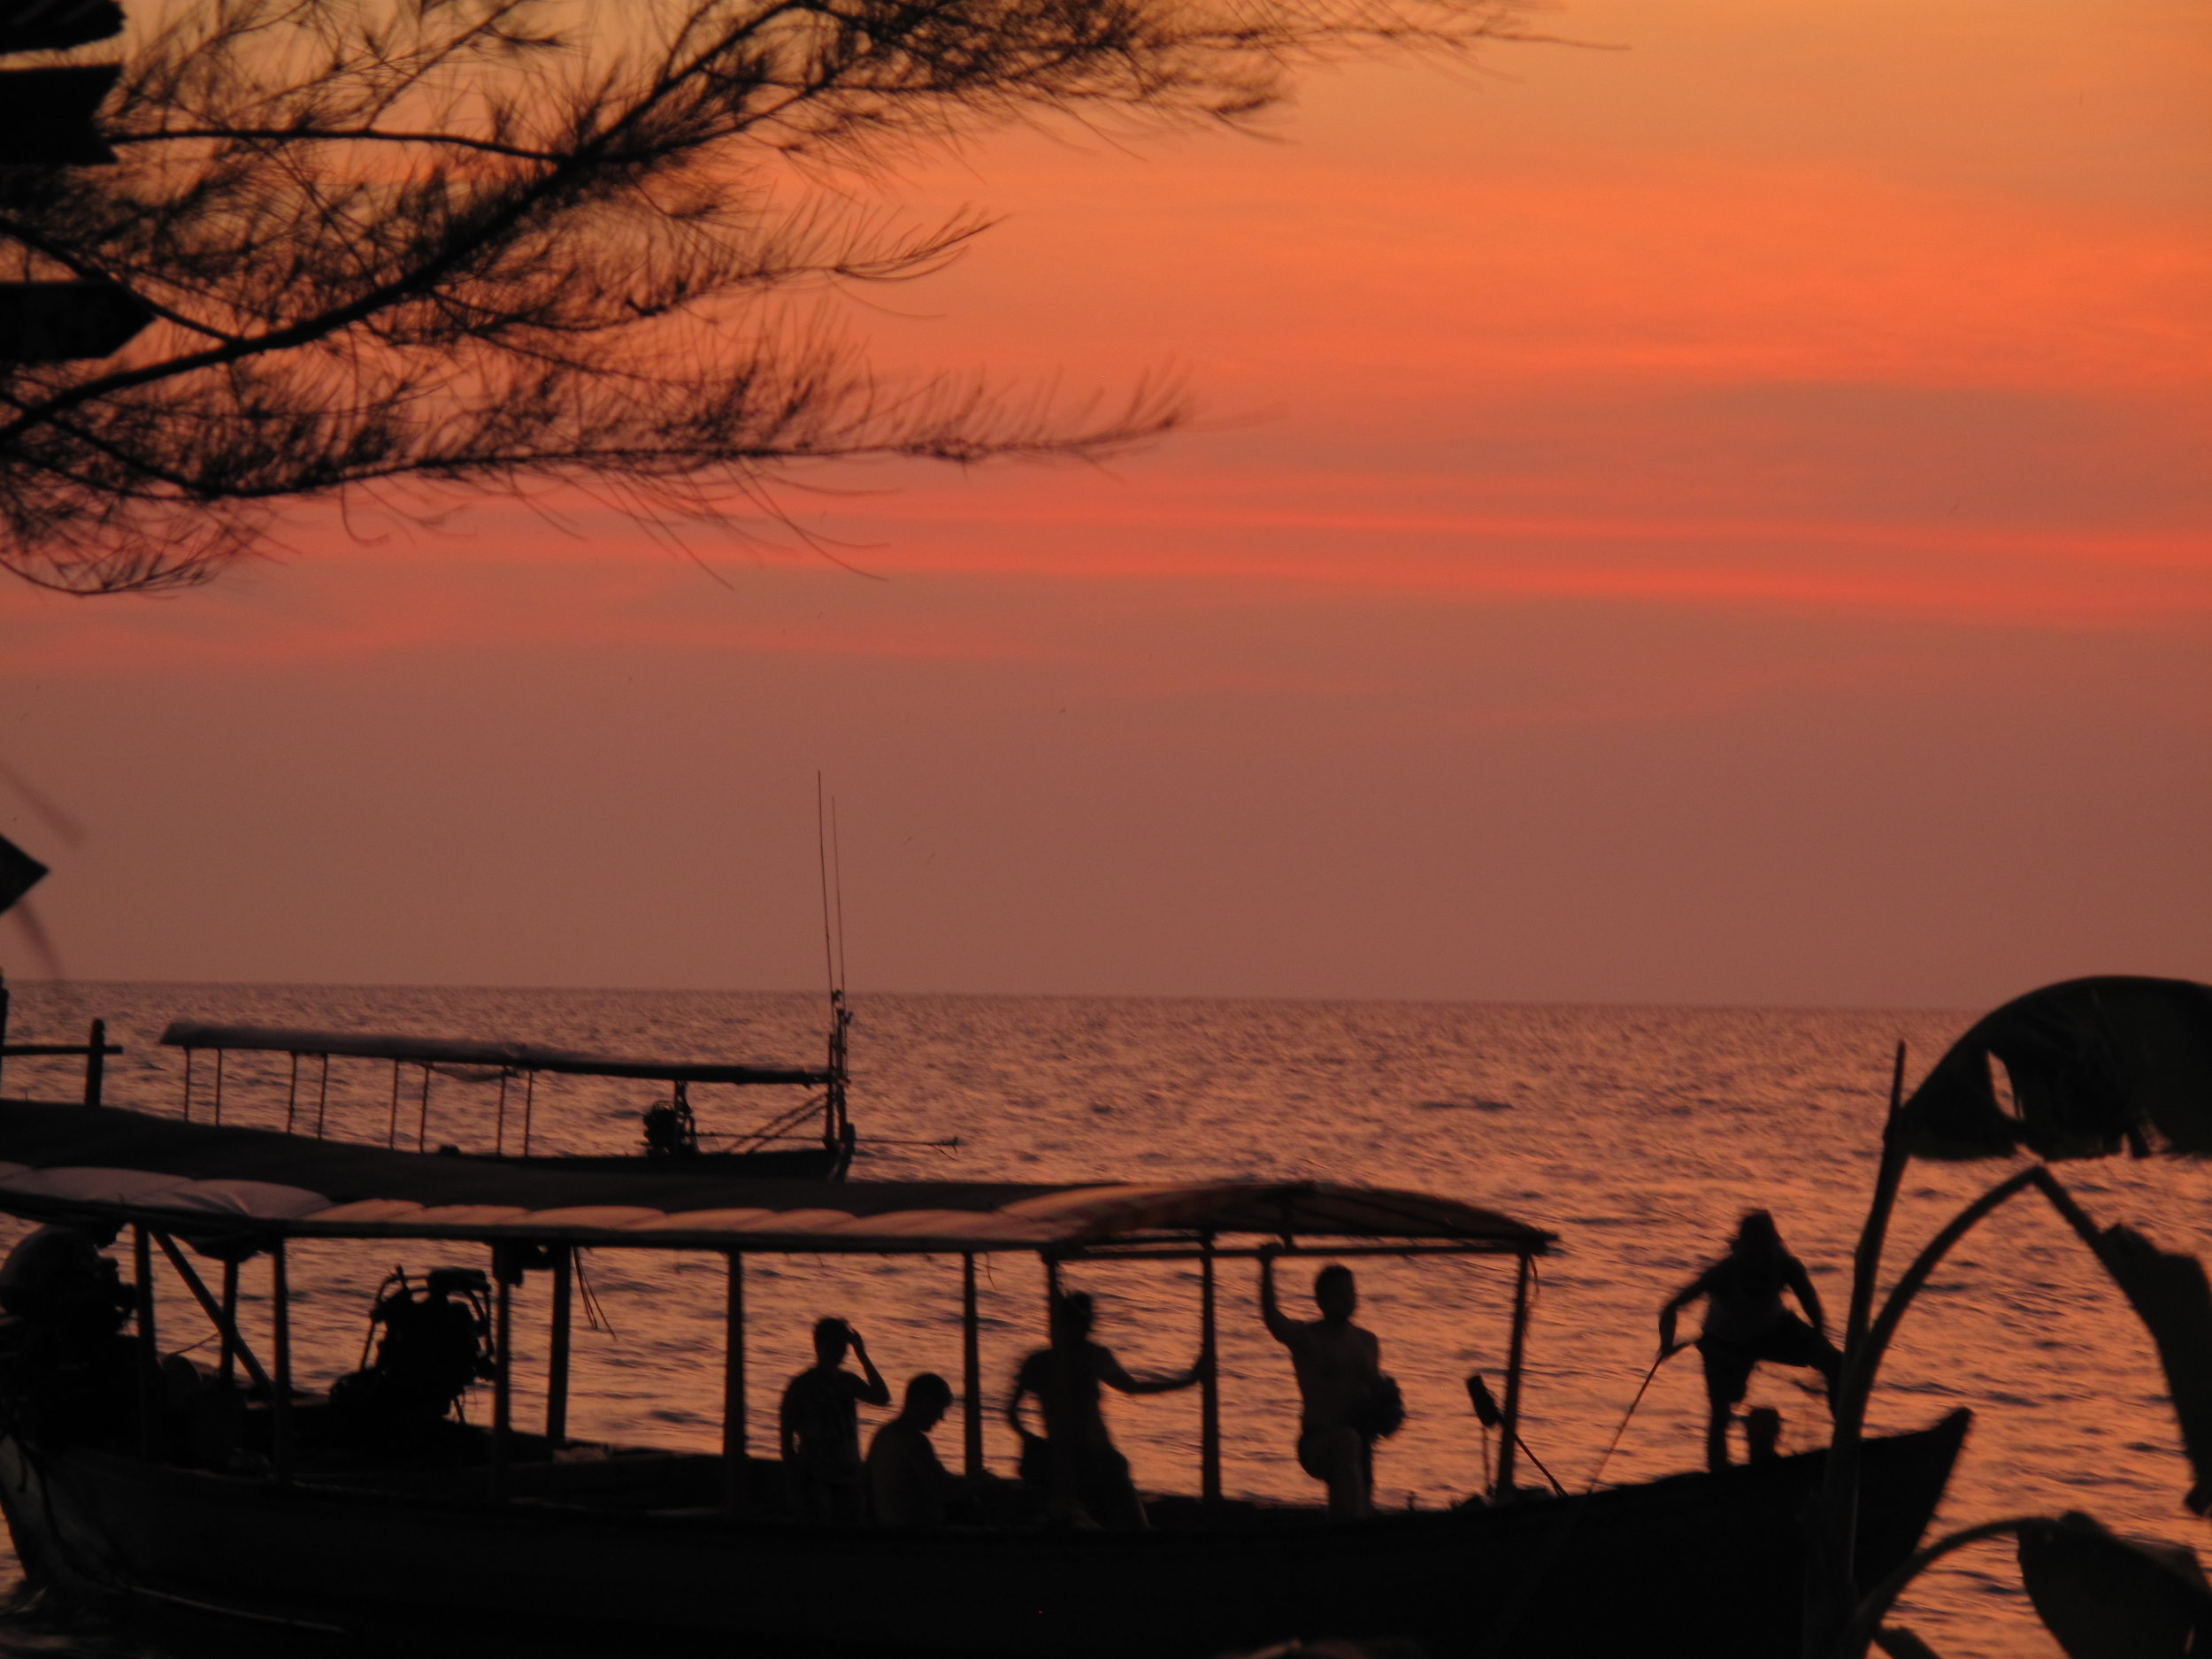 Did I mention that the sunsets are pretty nice? Sihanoukville